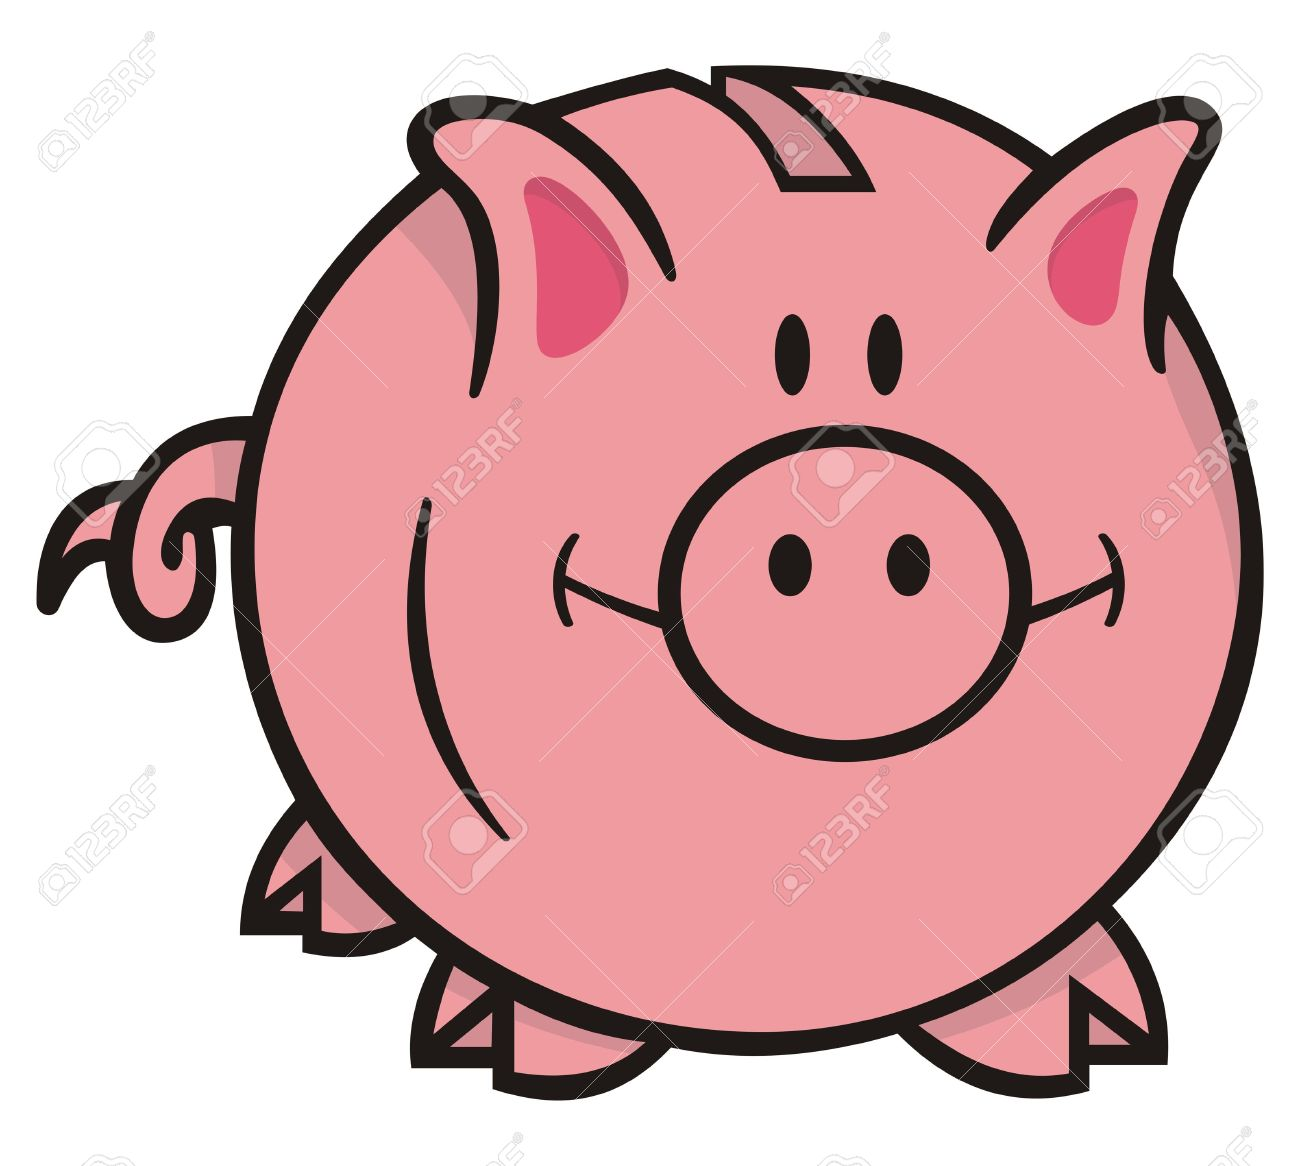 Cartoon piggy bank clipart svg royalty free stock Piggy Bank Clipart No Background Clip art of Bank Clipart #5379 ... svg royalty free stock